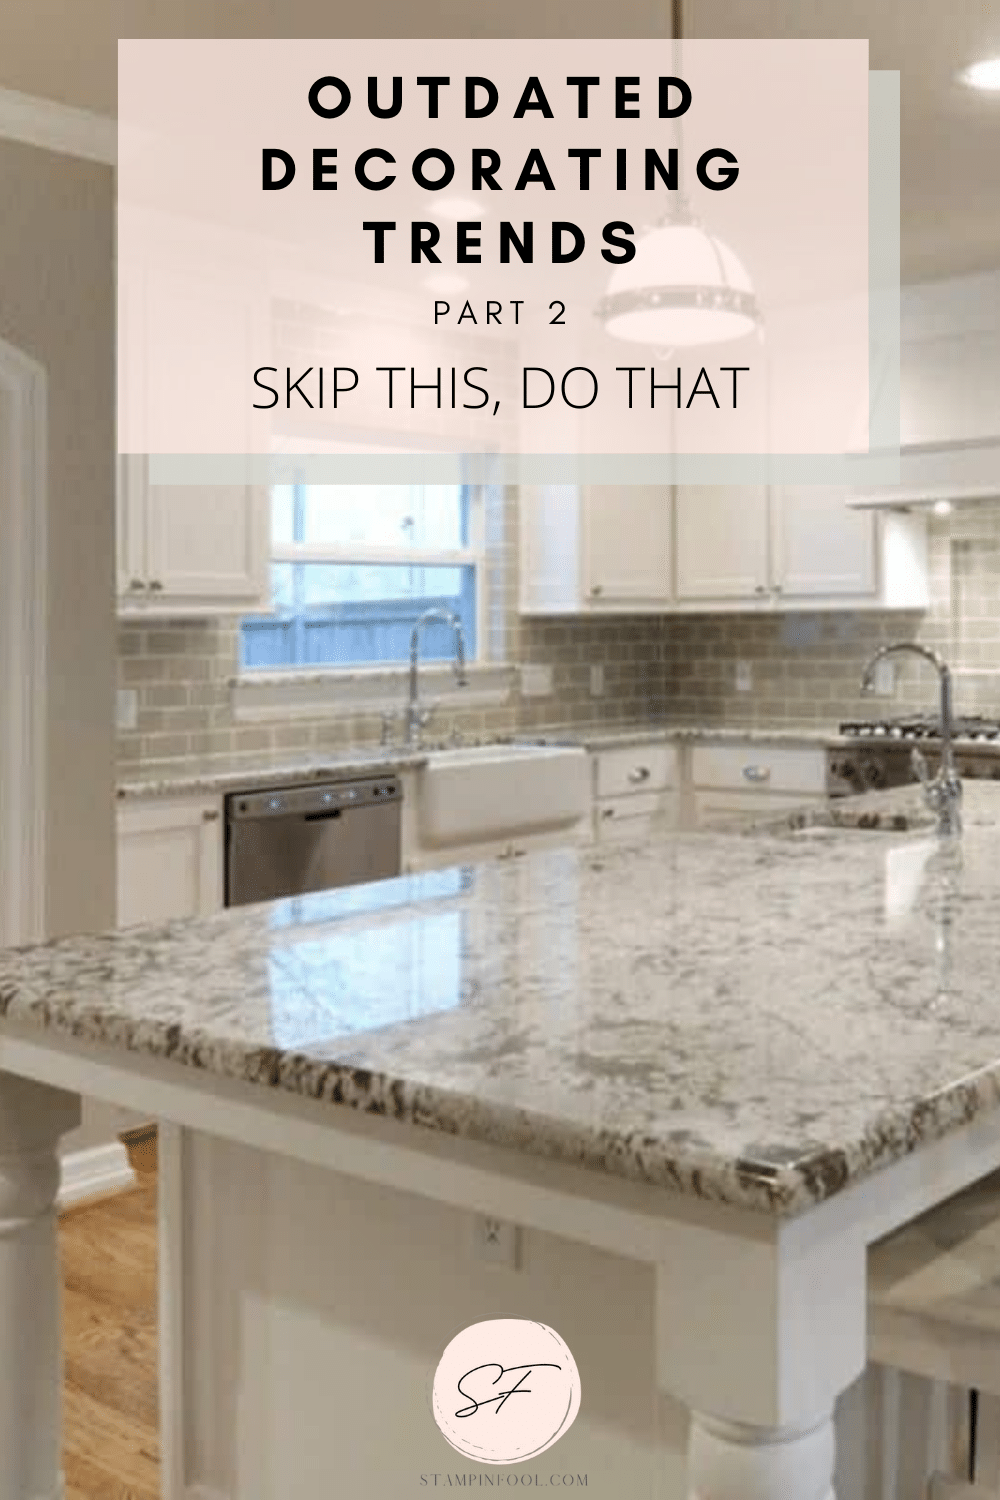 Outdated Decorating Trends You Should Ditch (2021), Part 2